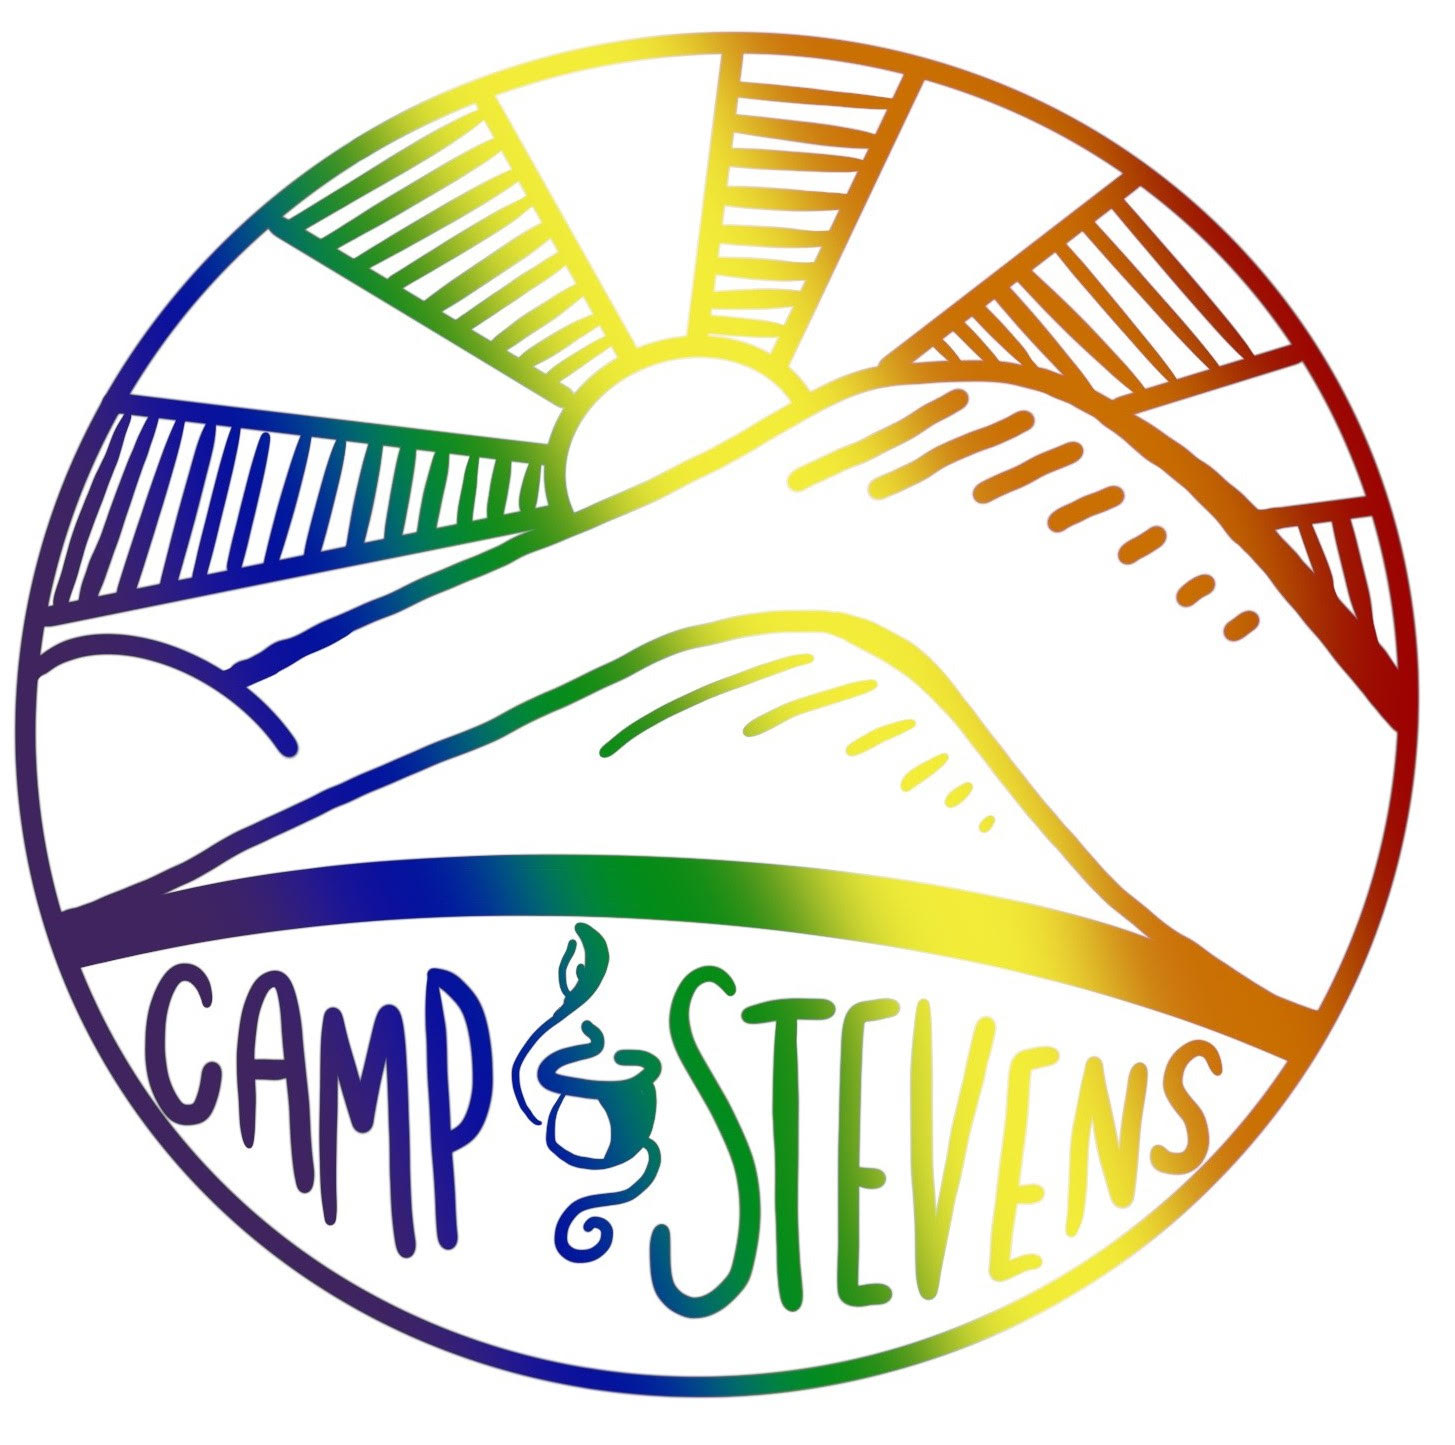 Camp Stevens Pride Sticker - Version 2 (2019)